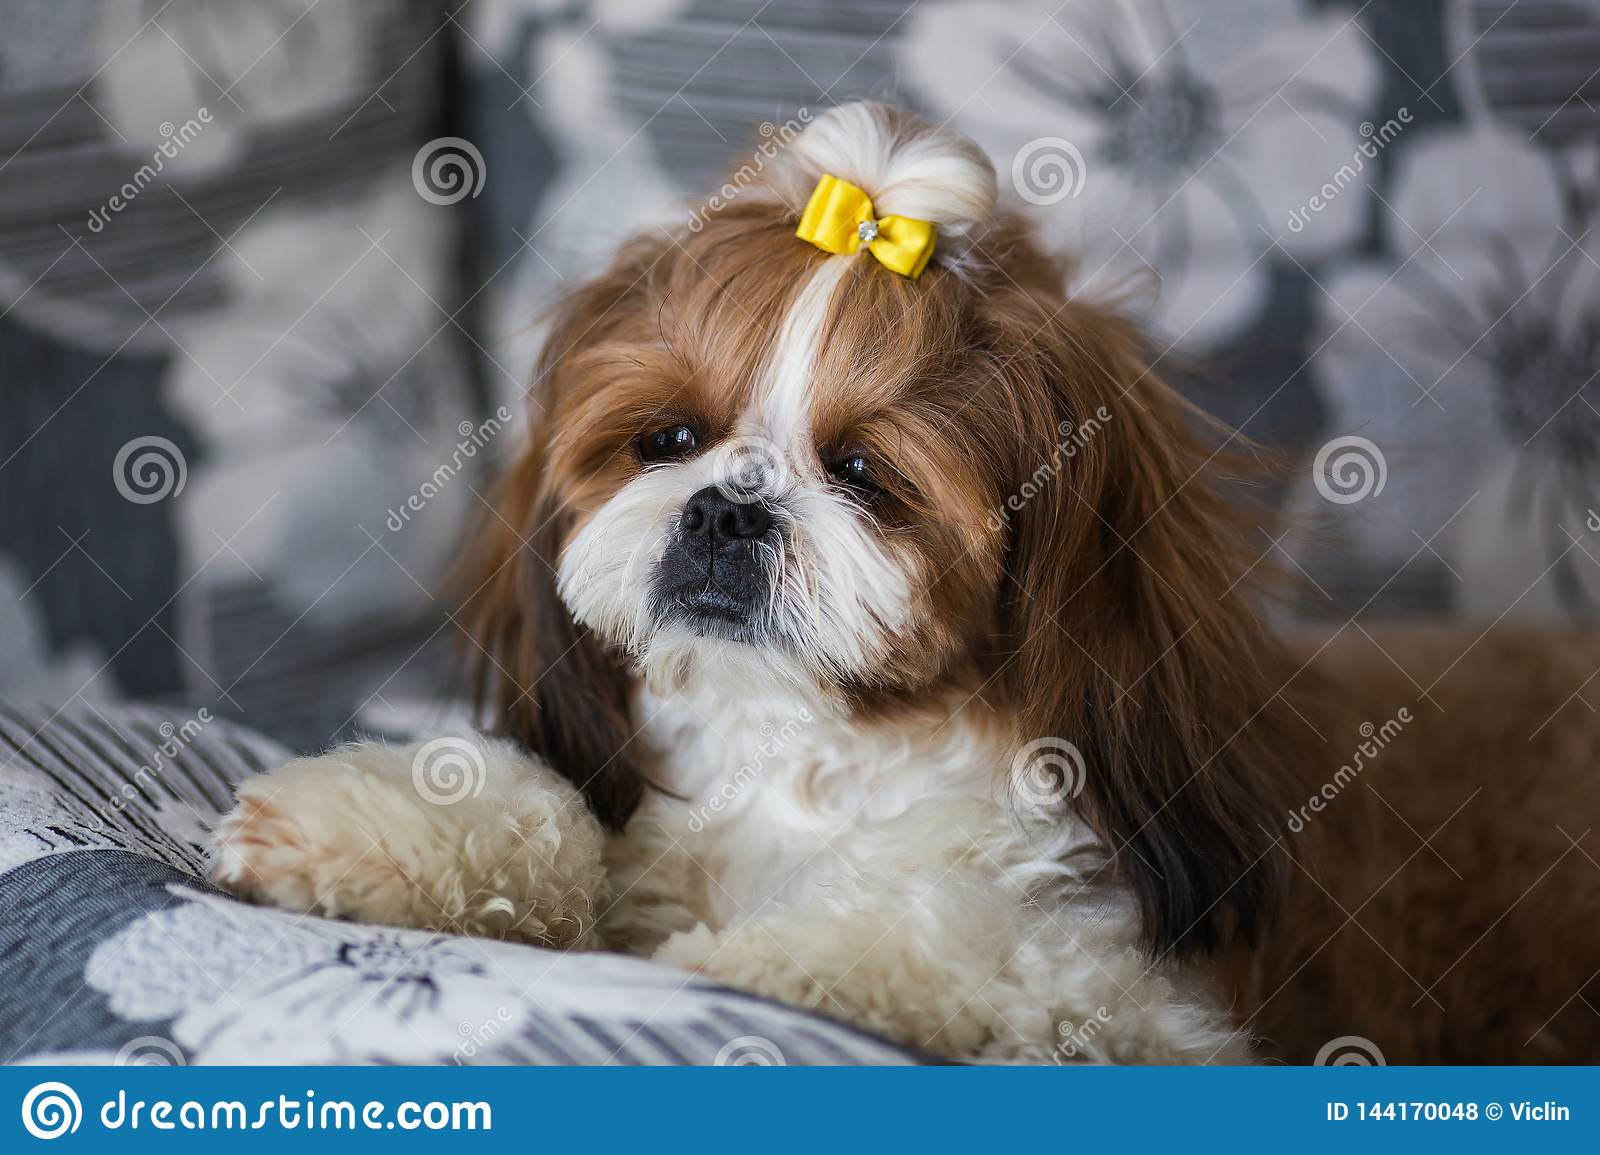 2 312 Portrait Puppy Shih Tzu Photos Free Royalty Free Stock Photos From Dreamstime